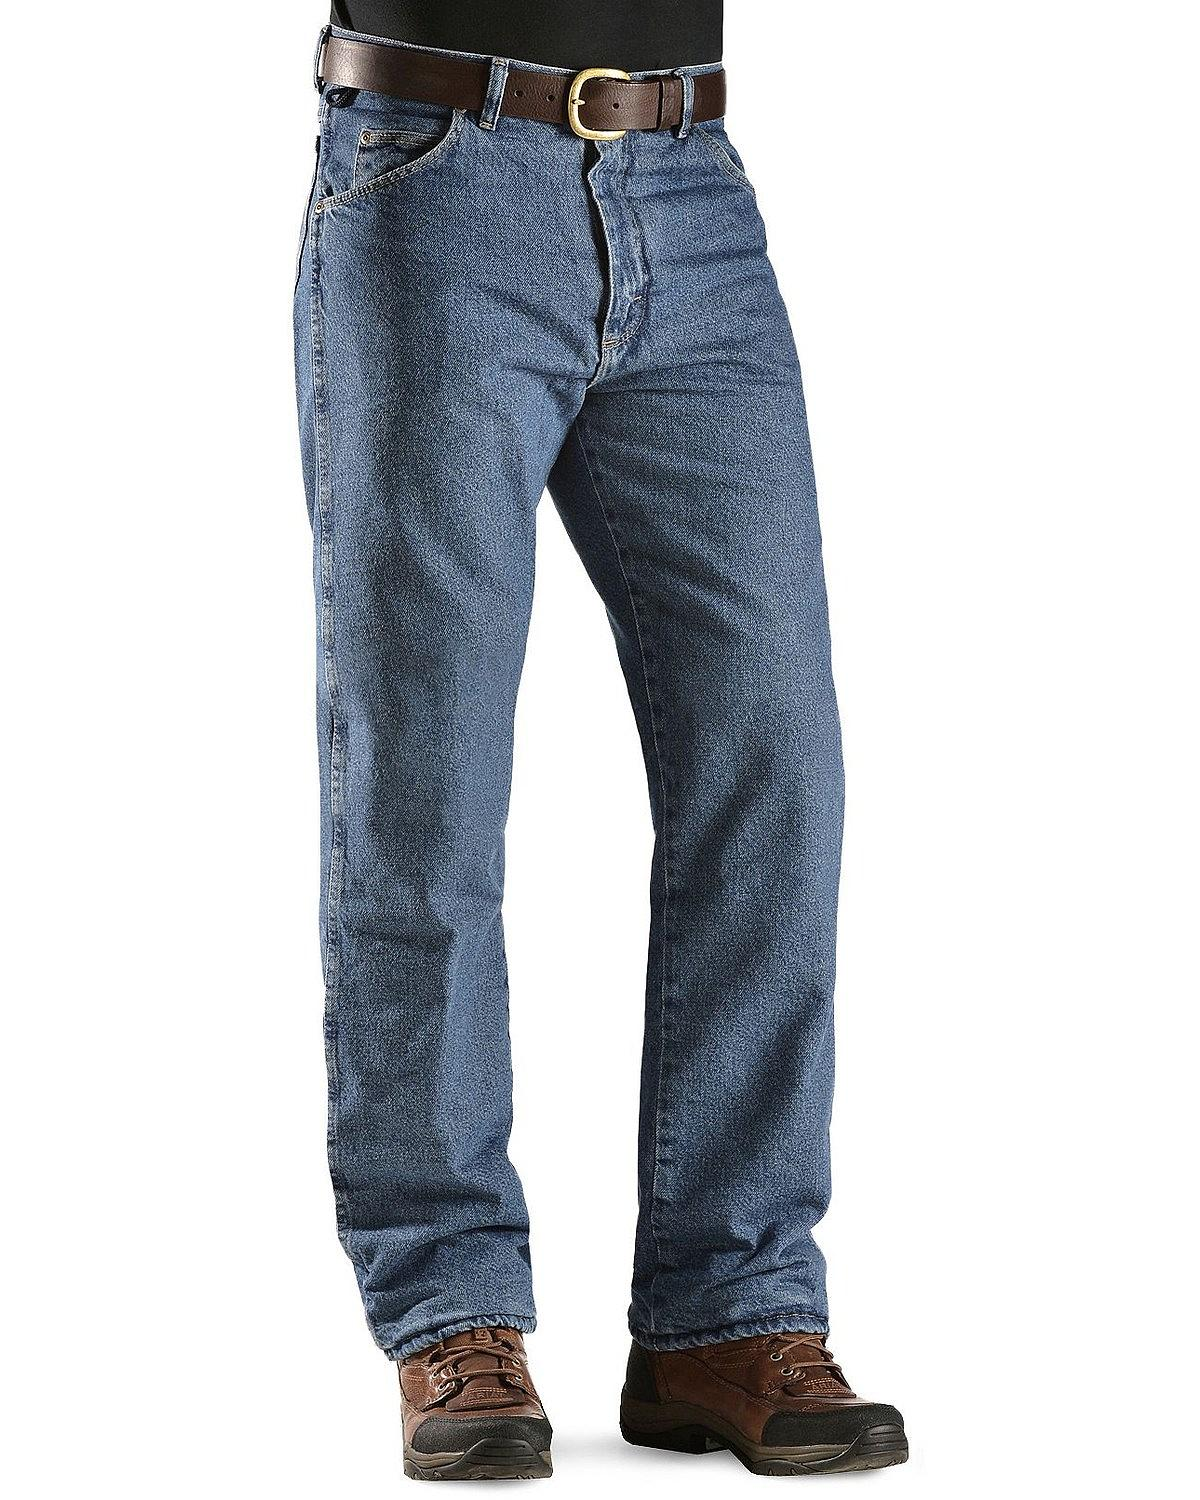 Shop men's flannel-lined jeans - relaxed fit in Men's at Eddie Bauer. % Satisfaction guaranteed. Since